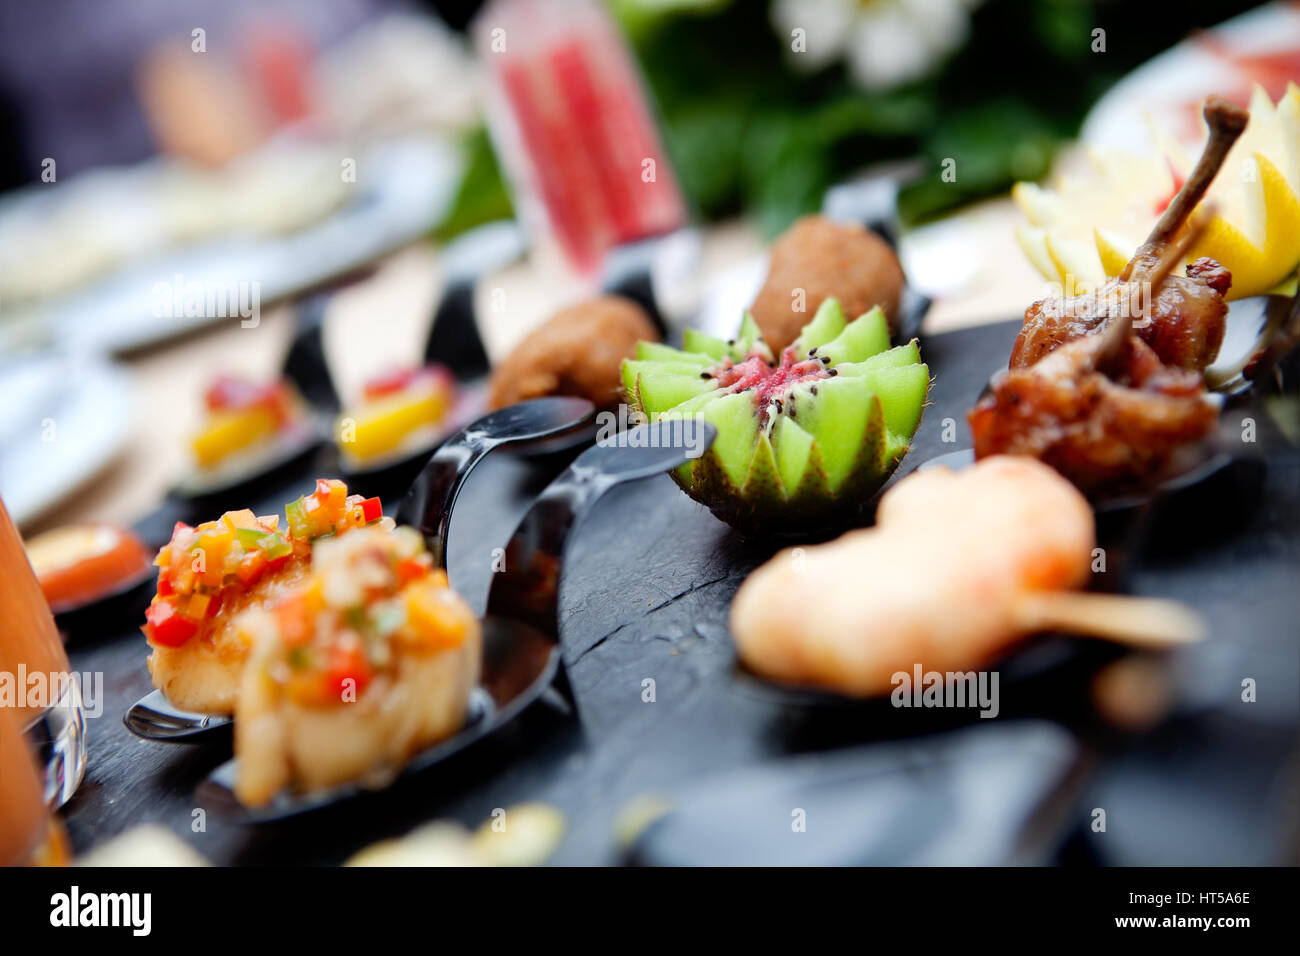 Feed and food. Outdoor catering. Food events and celebrations - Stock Image